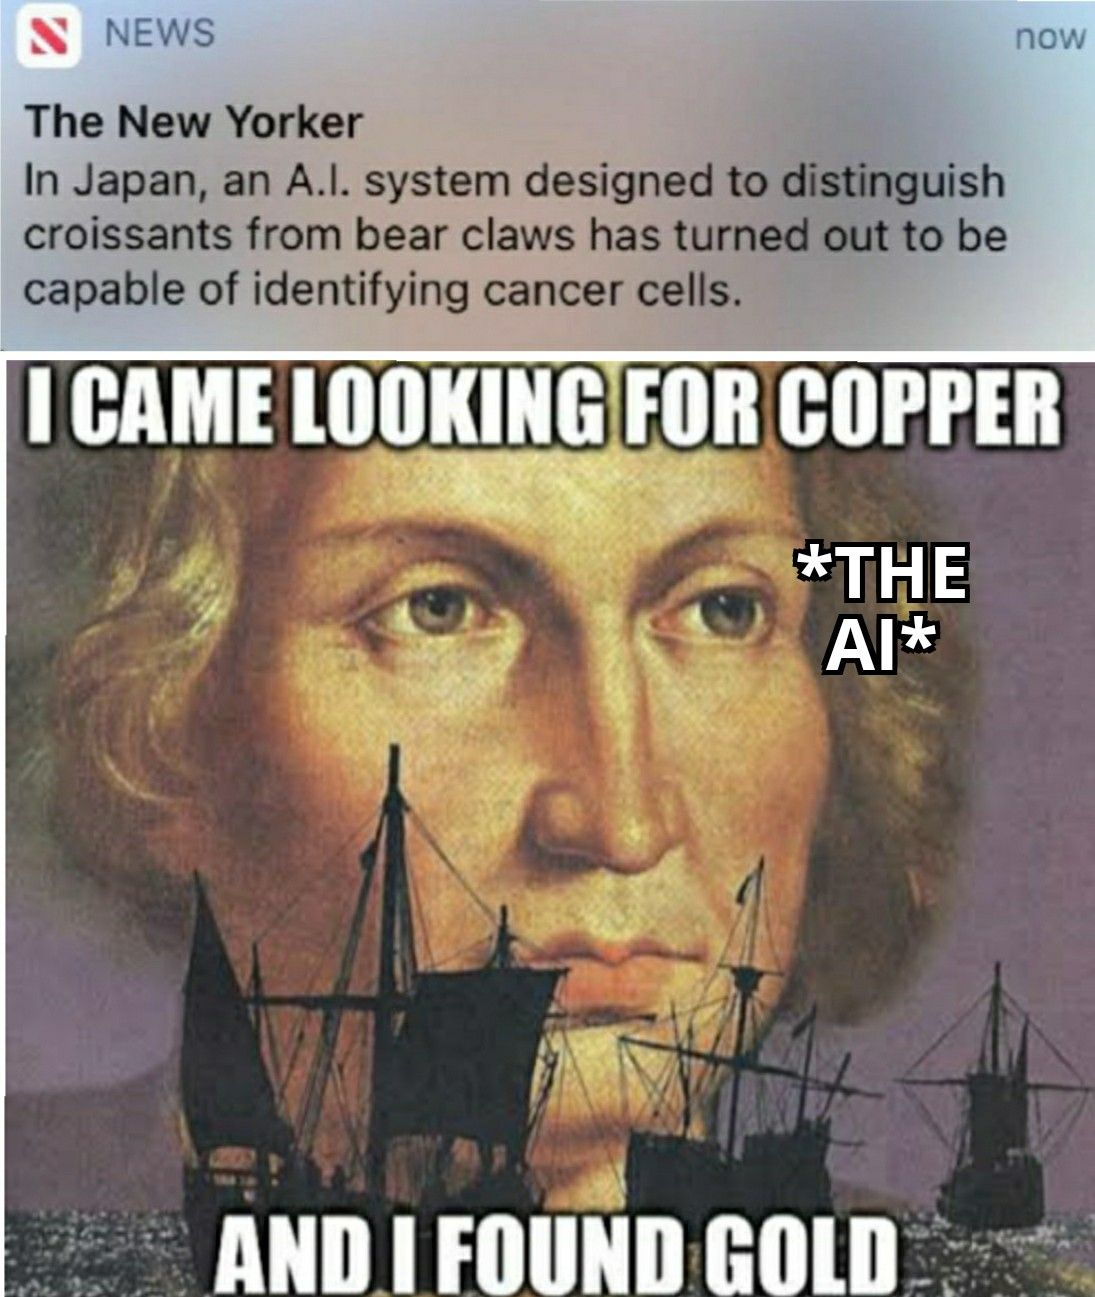 The A.I should be called Christopher Columbus